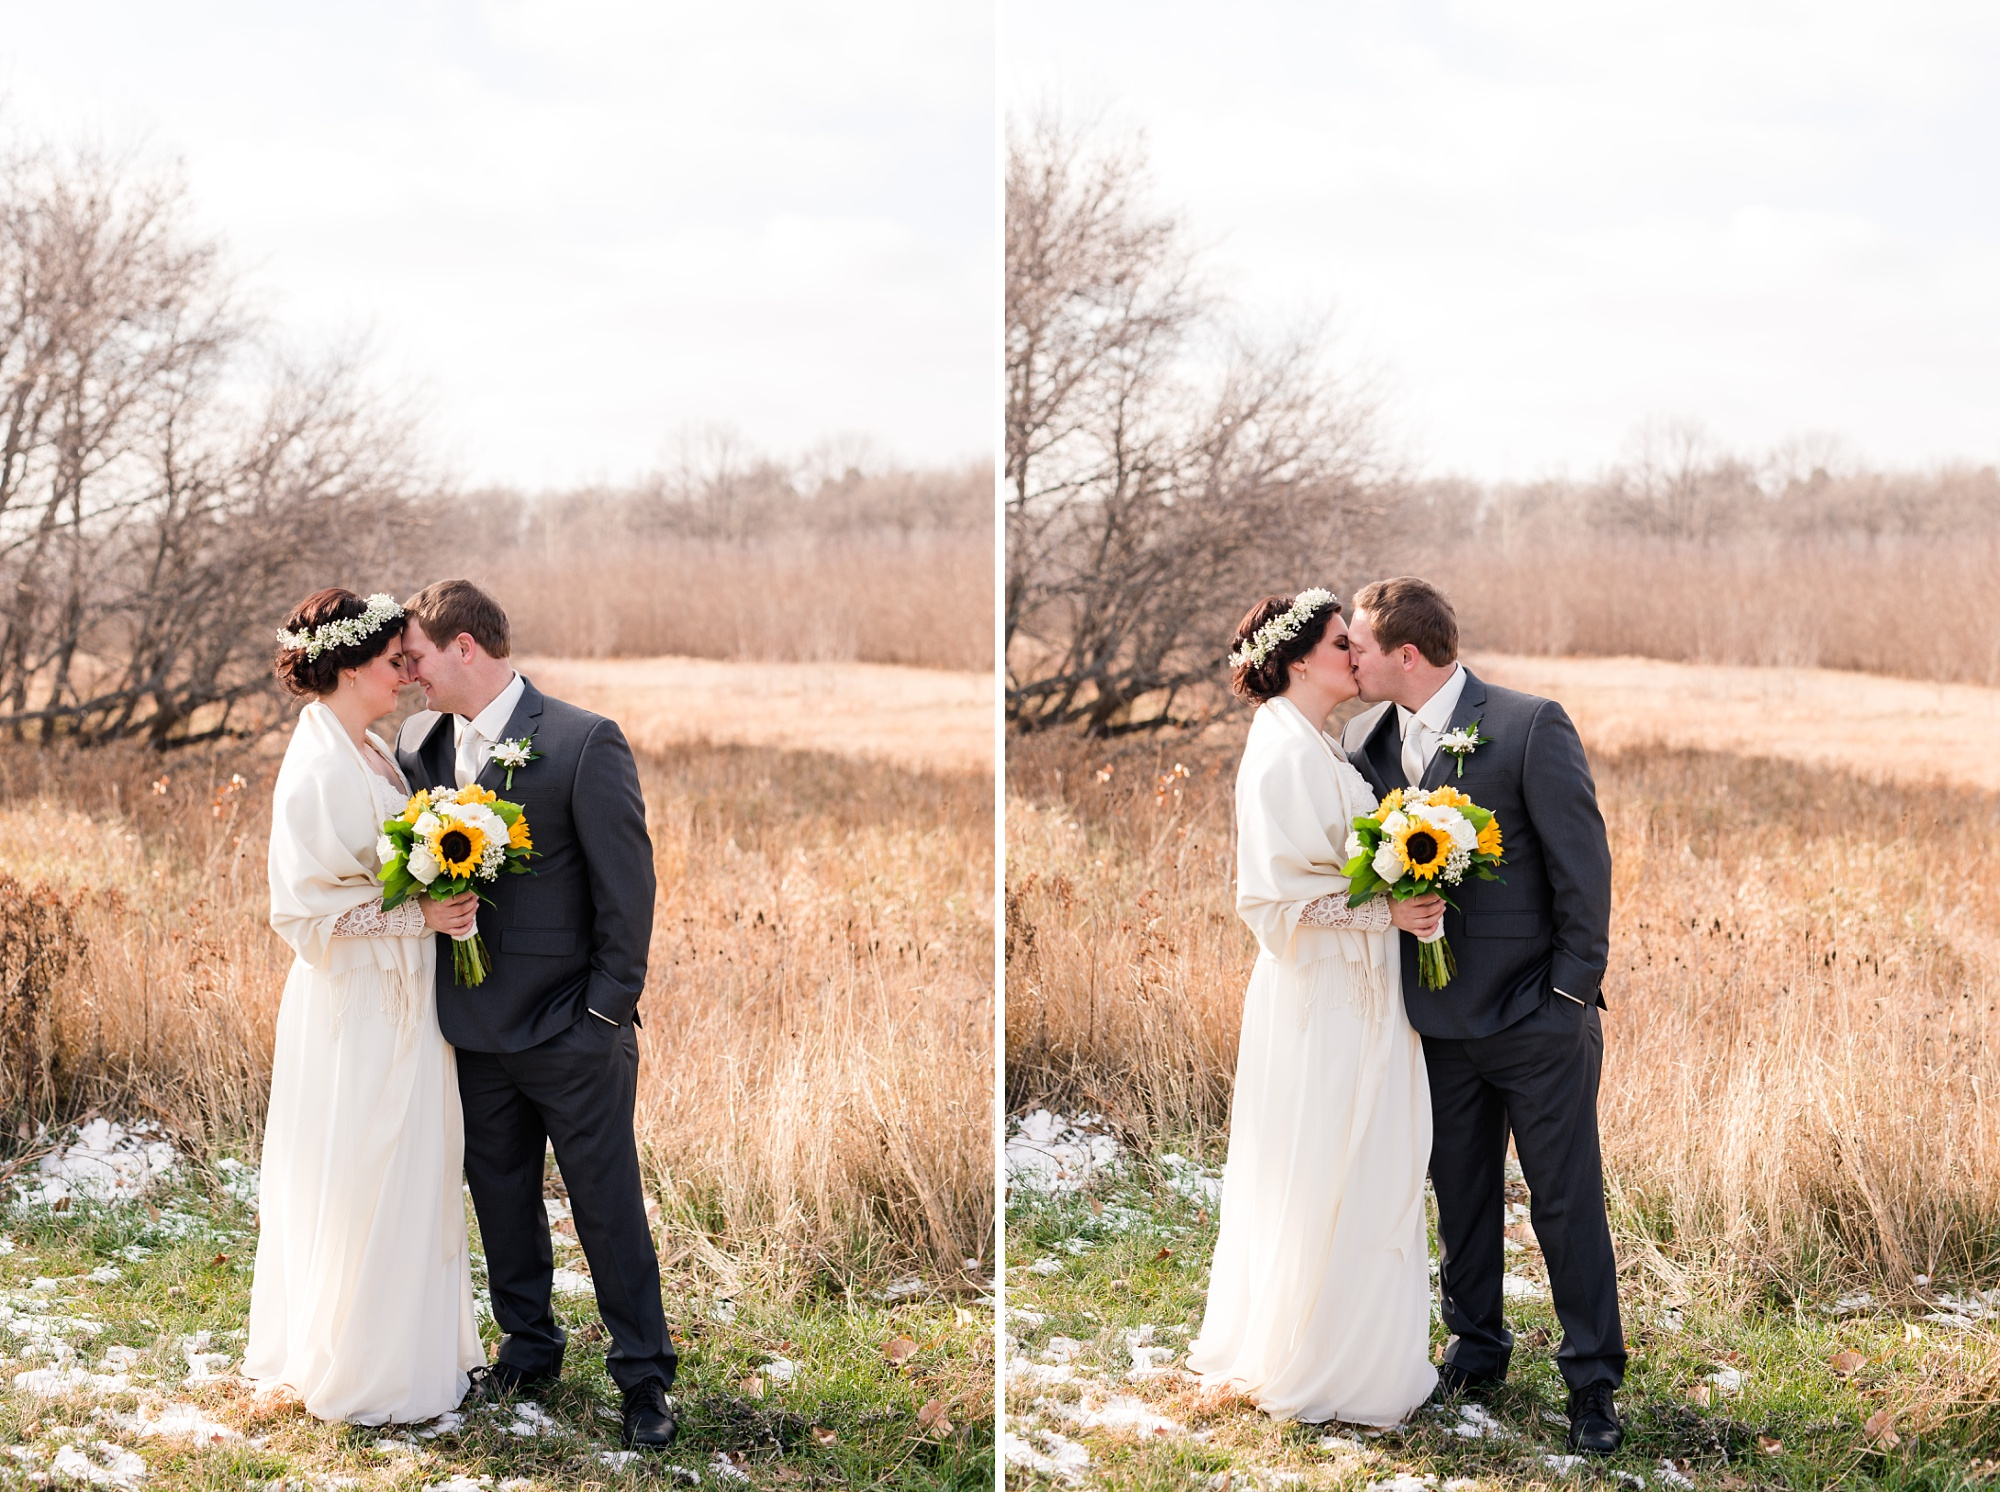 Amber Langerud_Rustic Oaks, MN winter barn wedding_0527.jpg